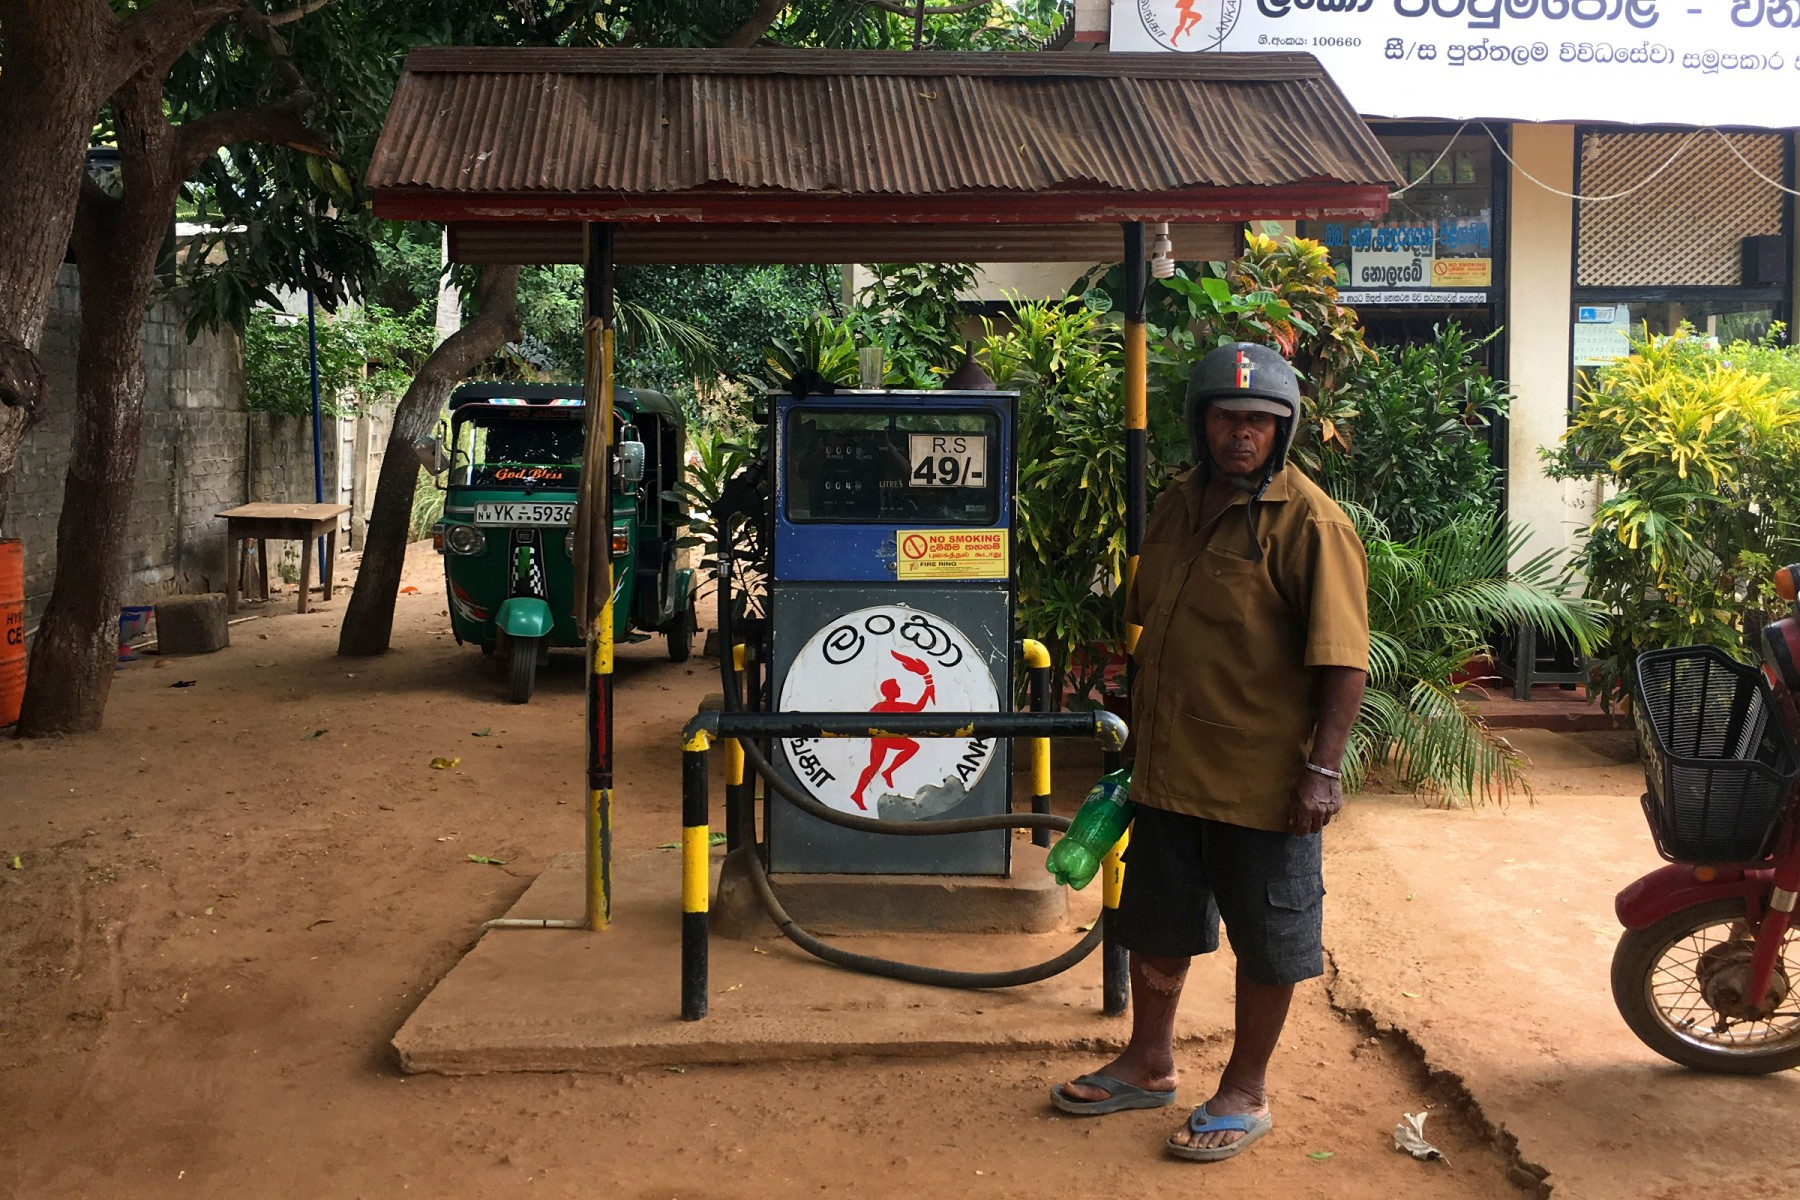 Petrol station in Wanathavilluwa.